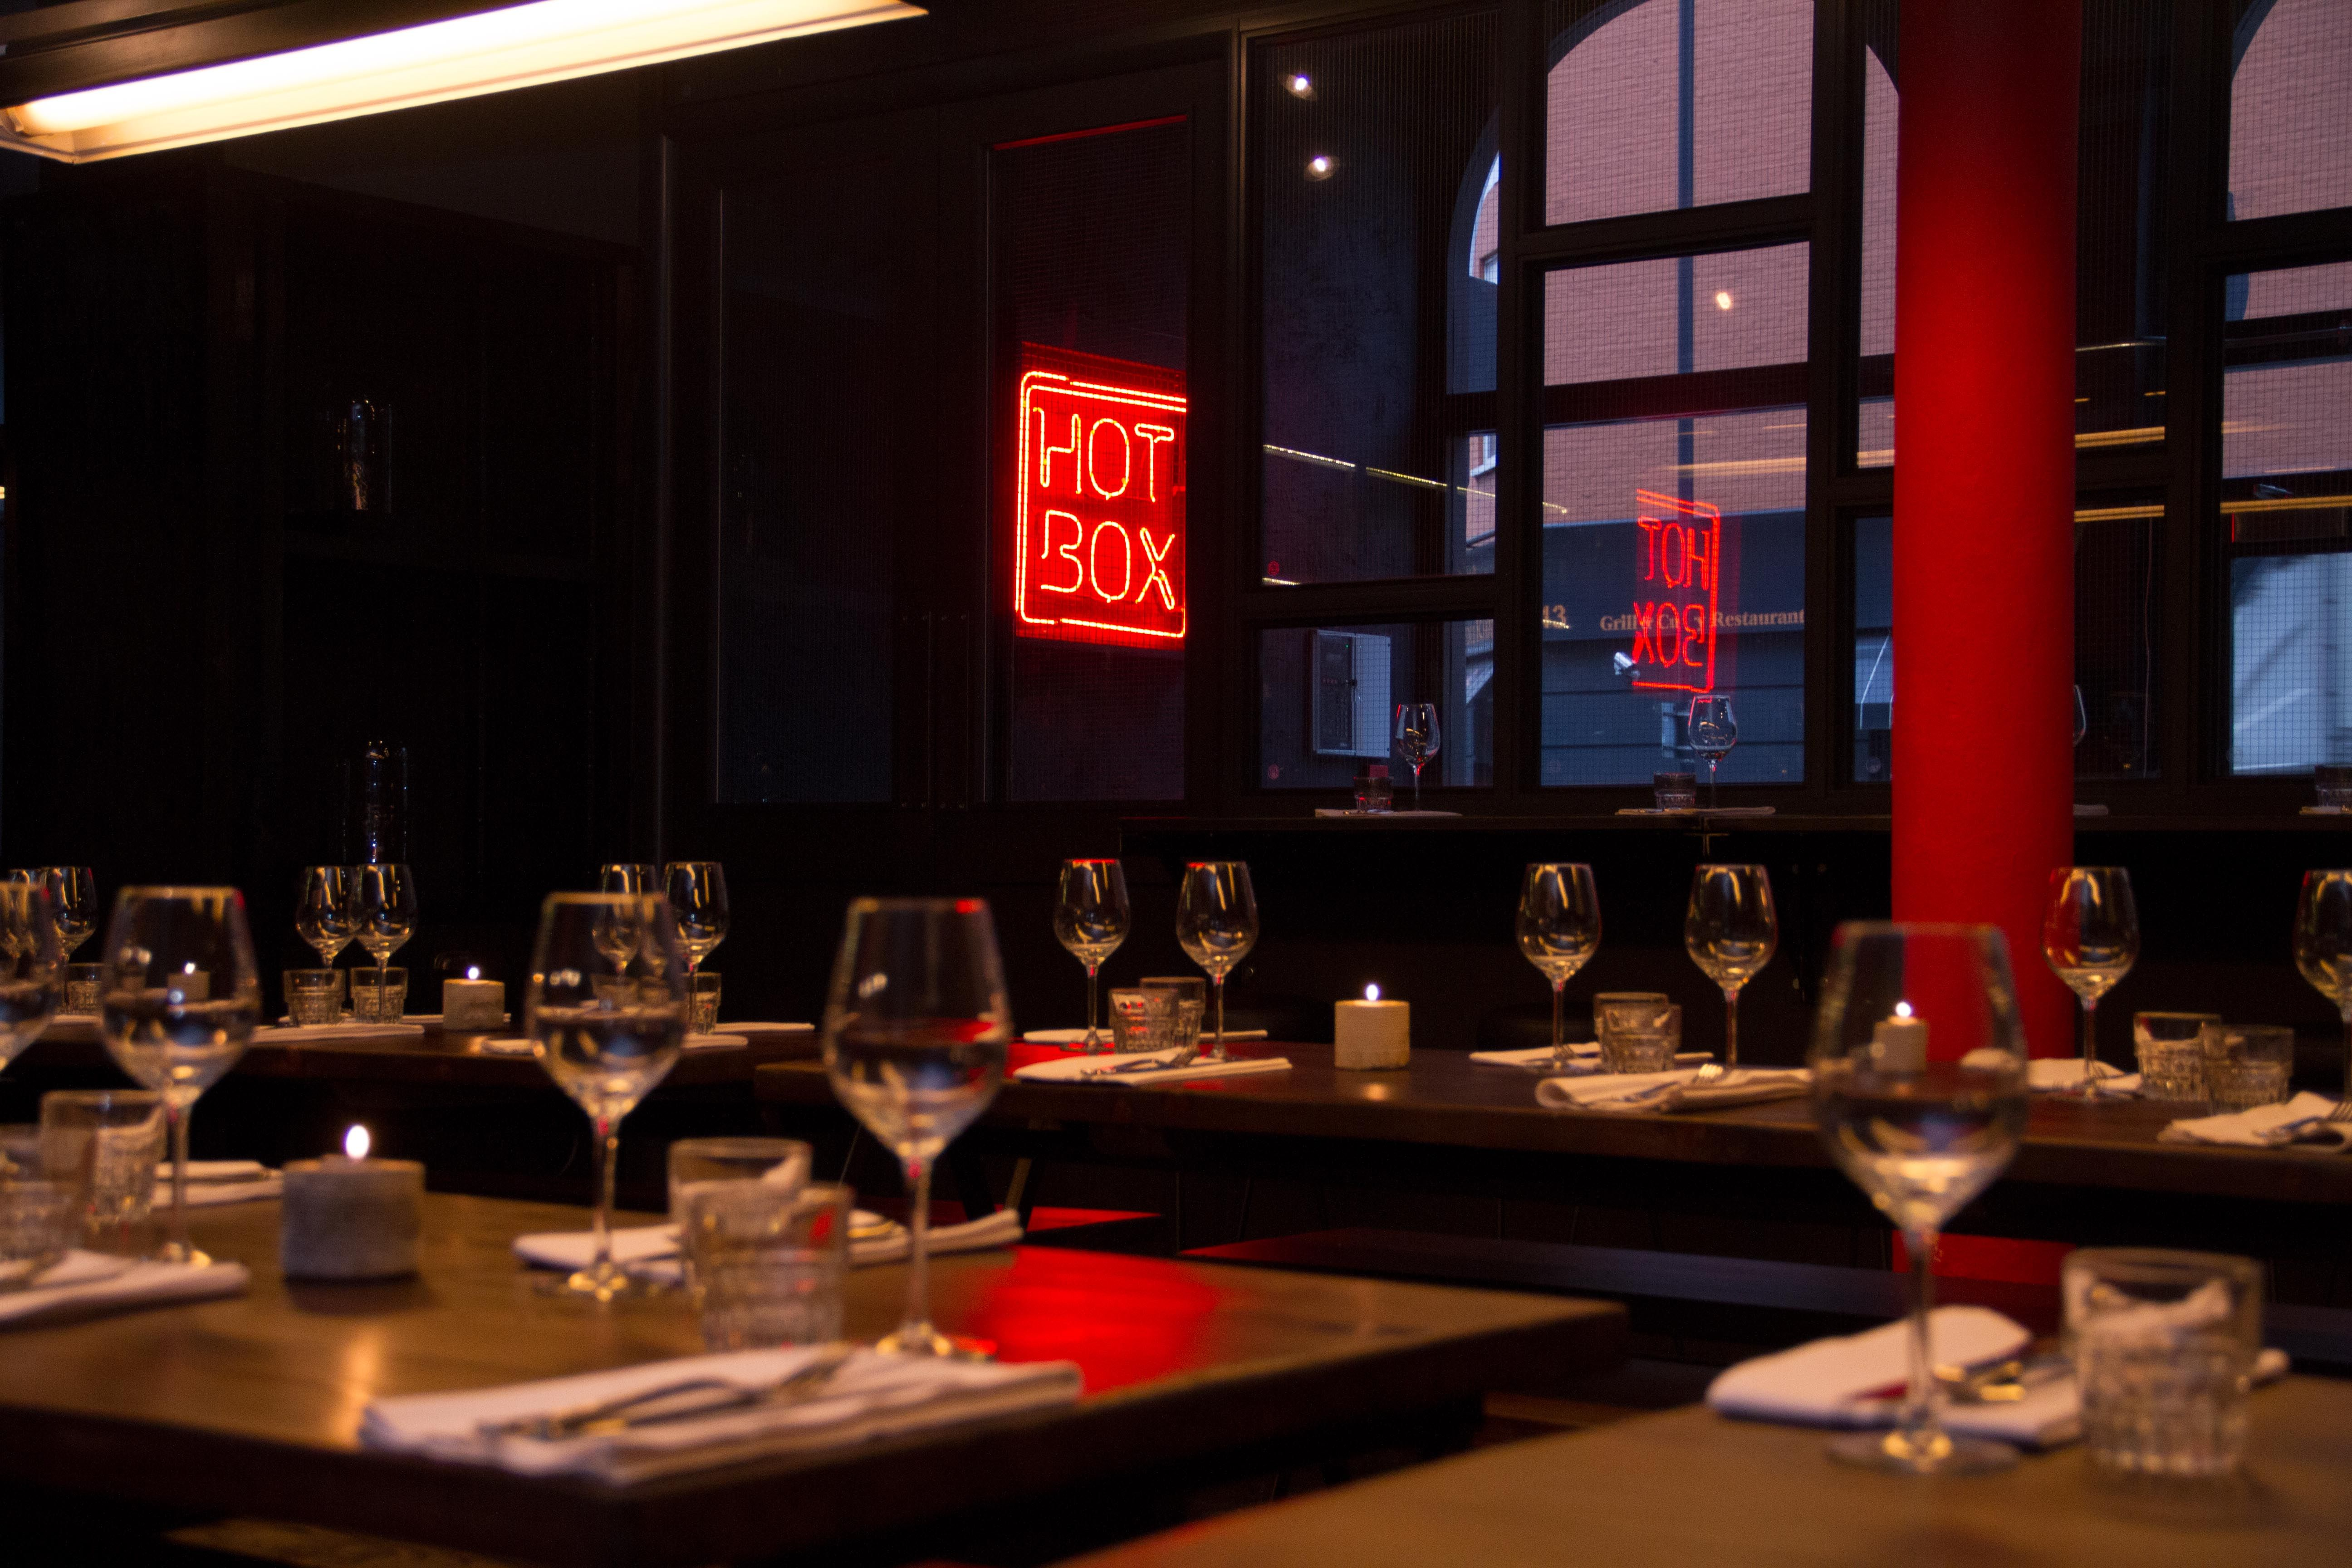 Today's #HildenStyleAwards entry comes from Hotbox London and 46 & mercy. Situated in Central London, this stylish restaurant & bar offers a classy look with a modern feel.  www.hotboxlondon.com See more fantastic entries or enter your own establishment here https://www.hilden.co.uk/style-awards